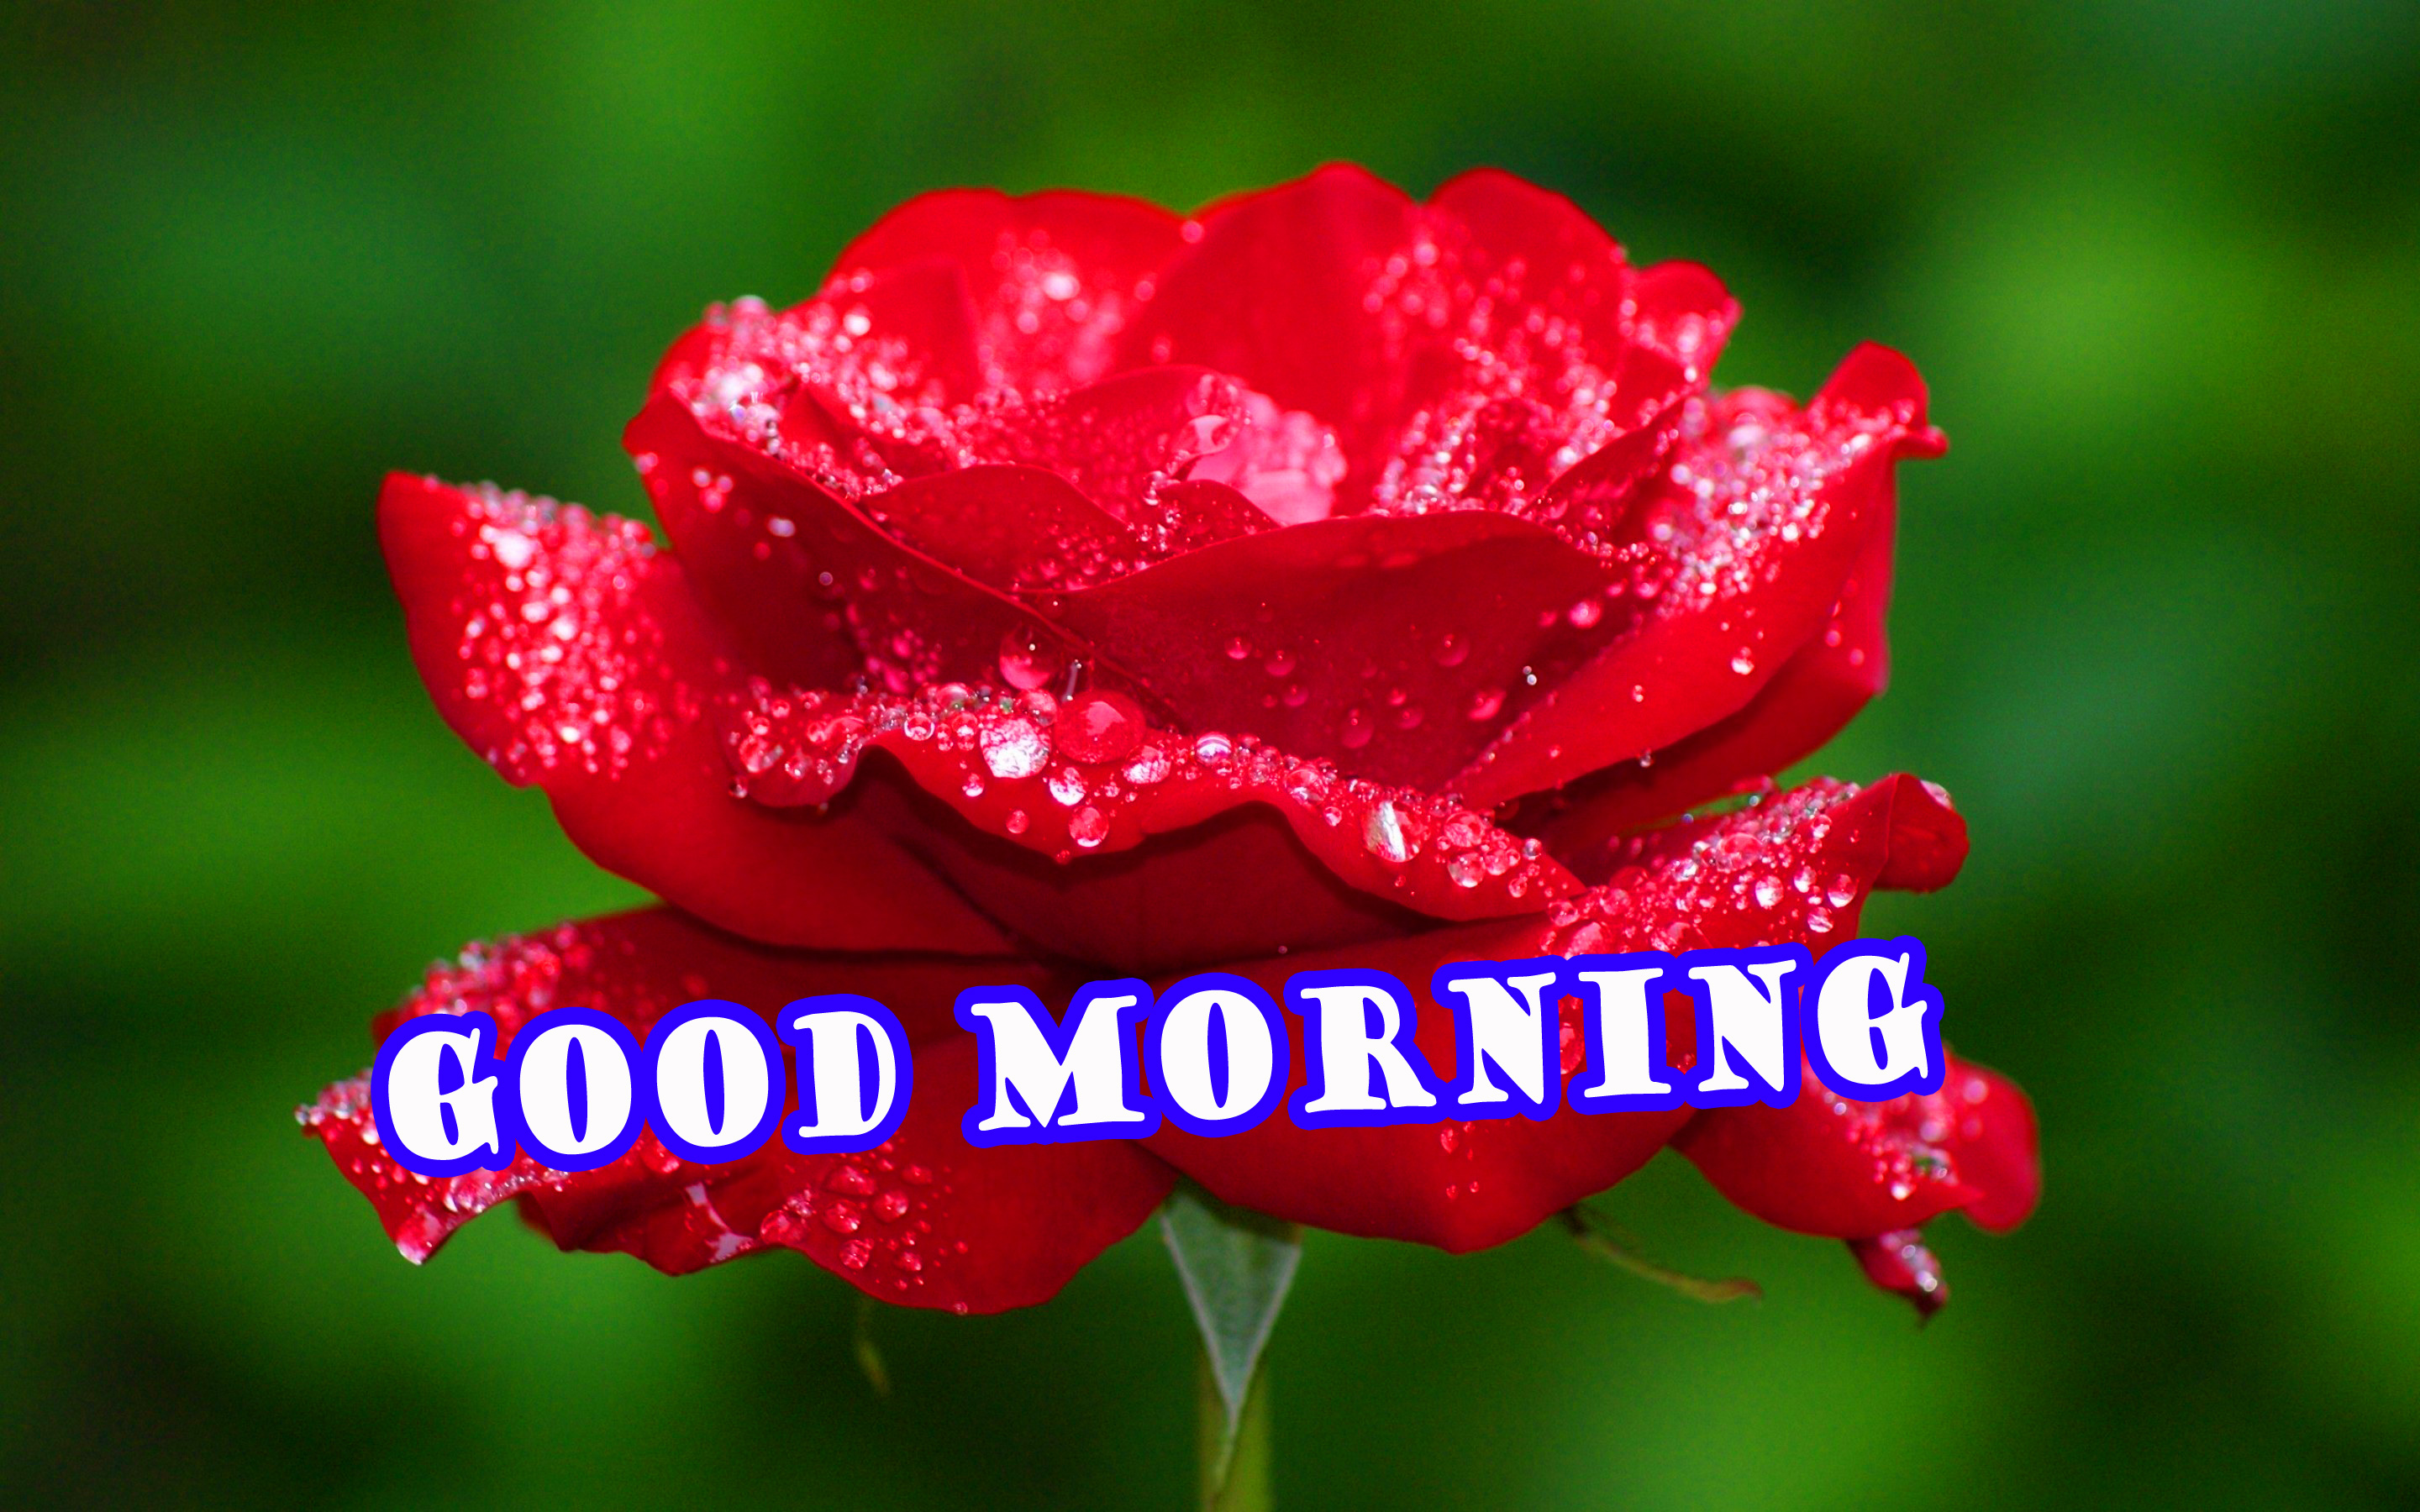 Good Morning Flowers Pictures Images Photo Free HD